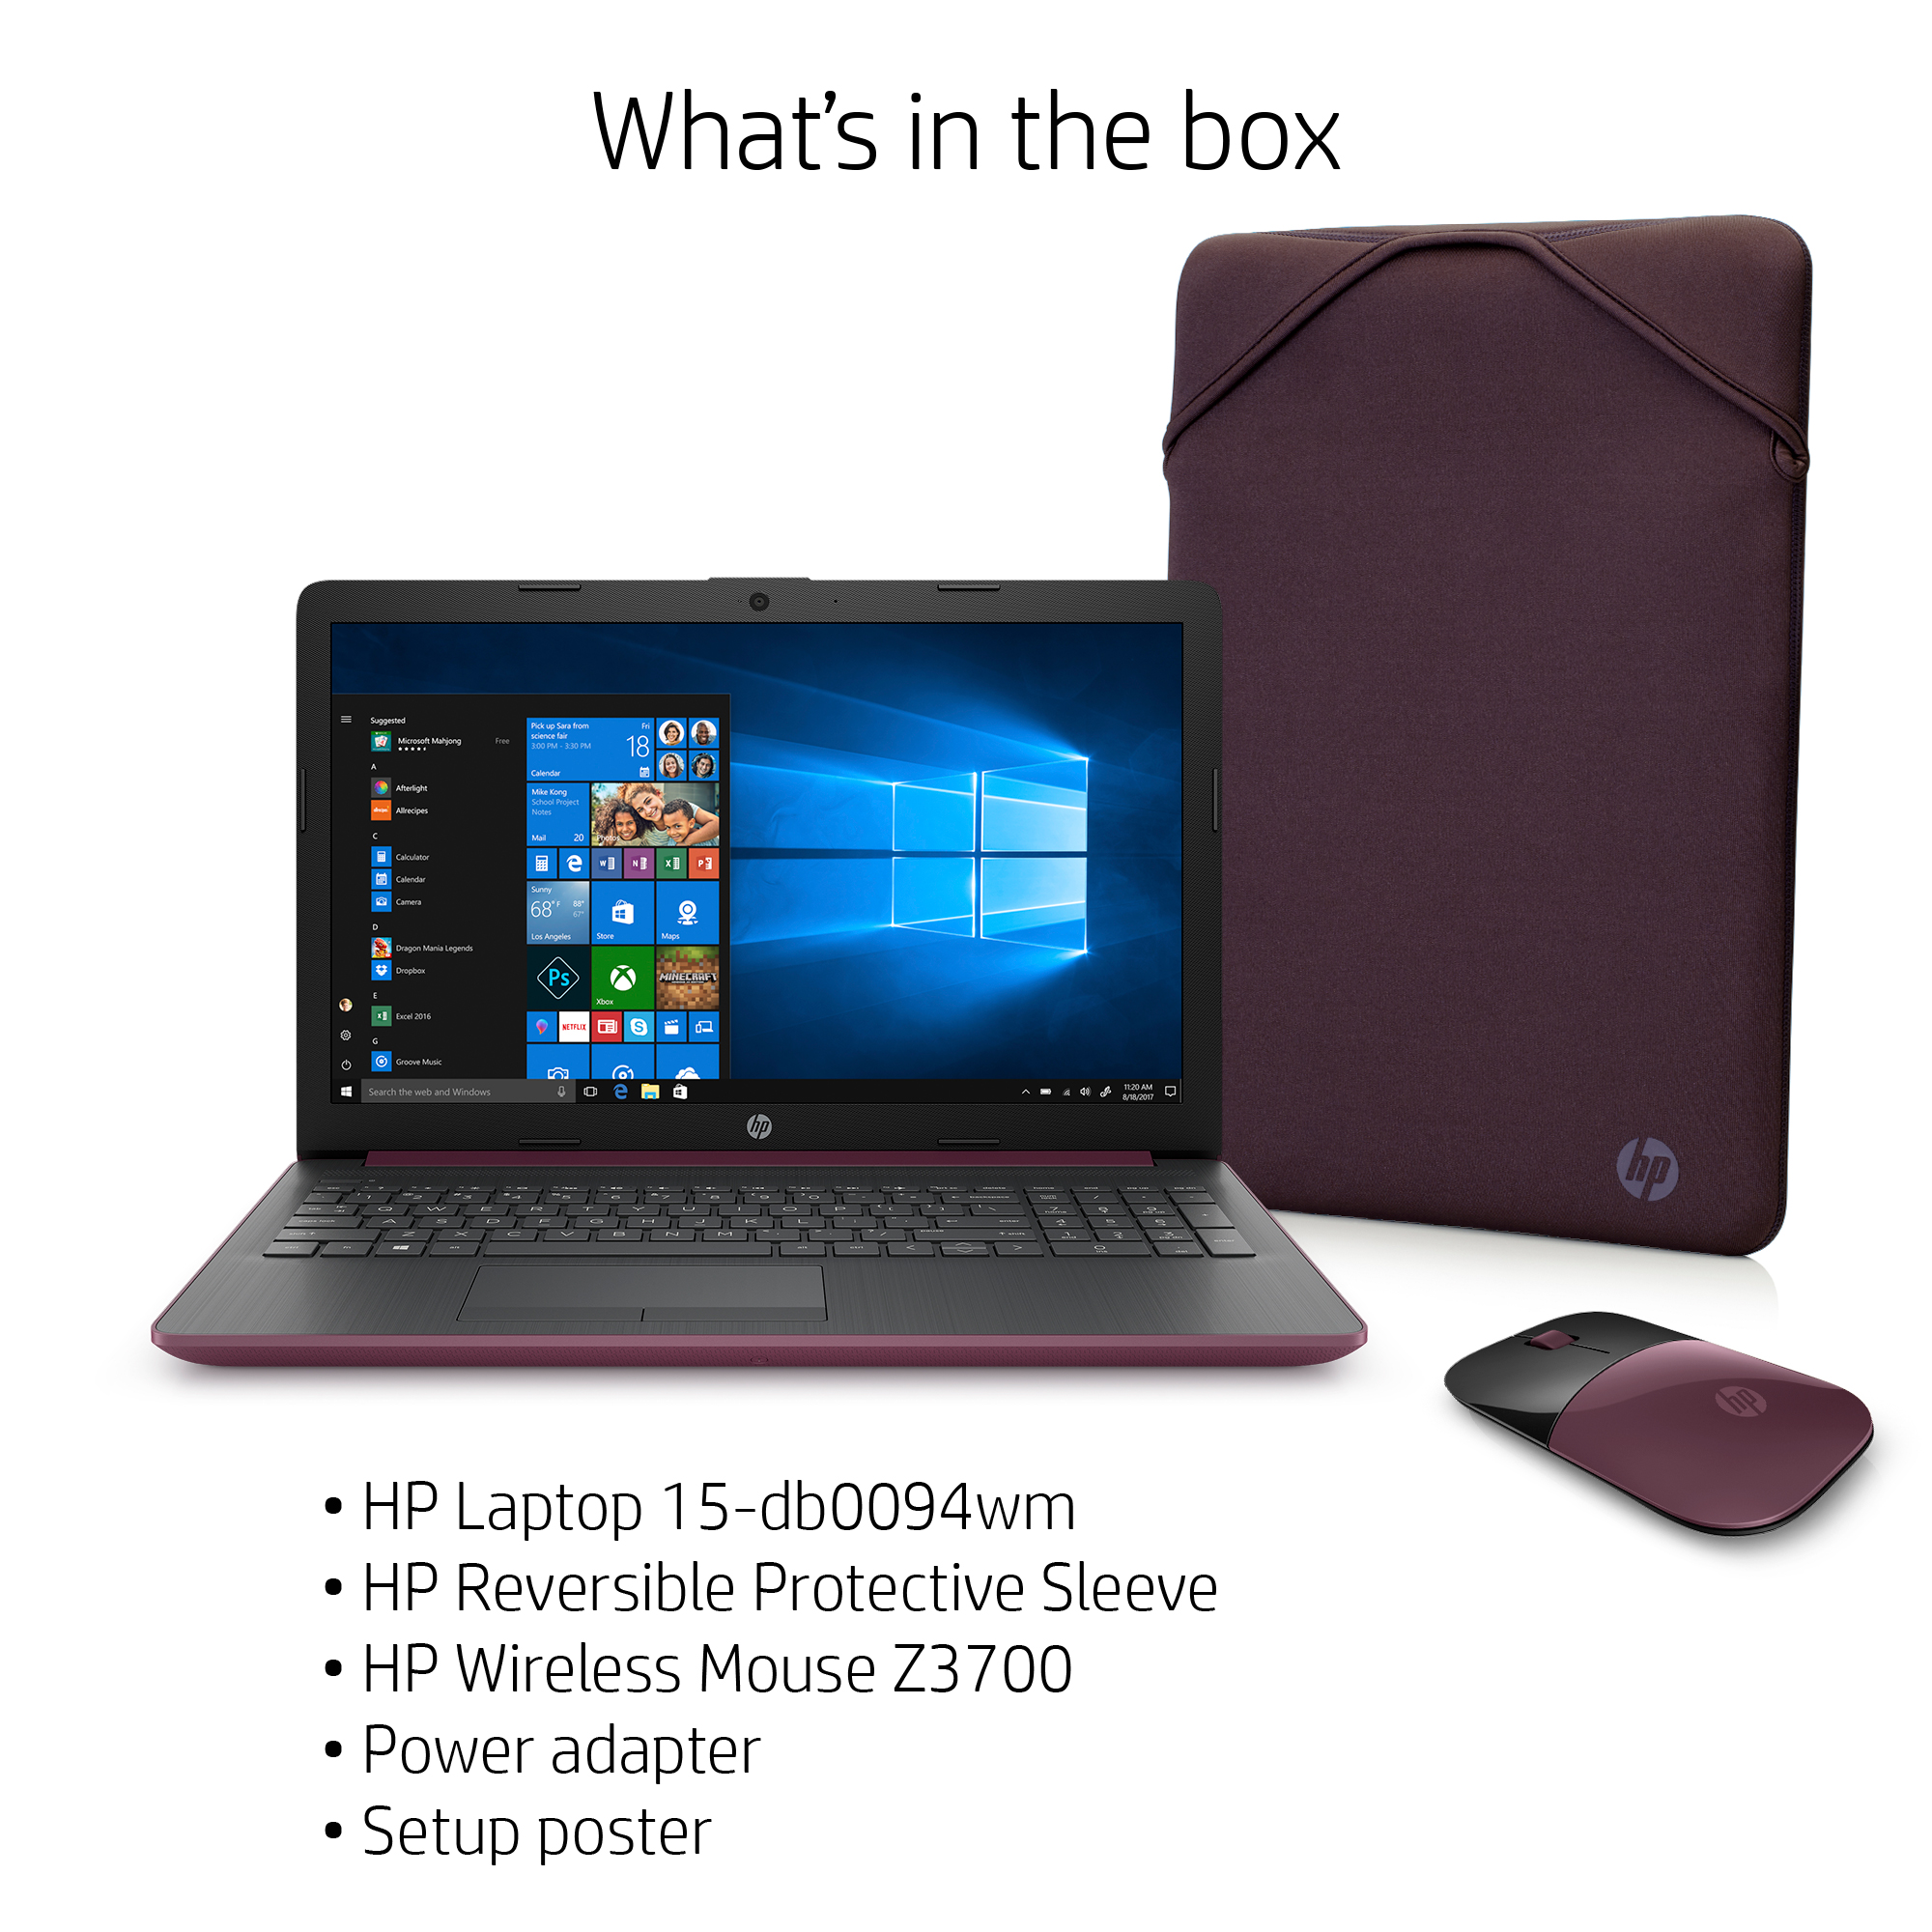 Hp 15 6 Laptop Bundle Amd A4 9125 4gb Sdram 500gb Hdd Wireless Mouse Sleeve Berry Mauve 15 Db0094wm Walmart Com Walmart Com